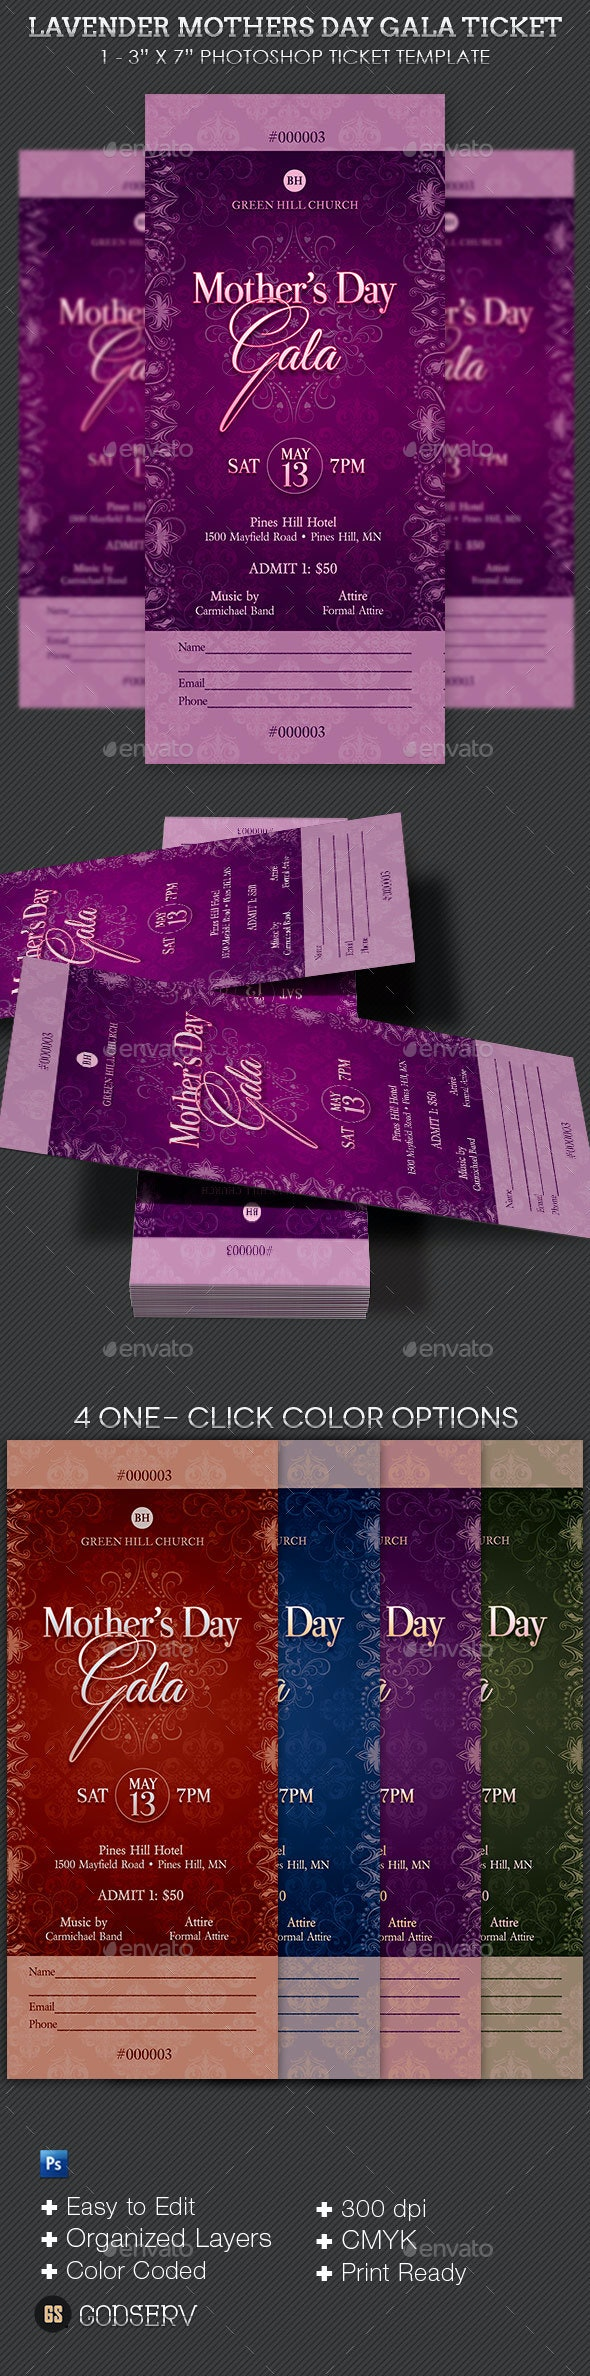 Lavender Mothers Day Gala Ticket - Miscellaneous Print Templates